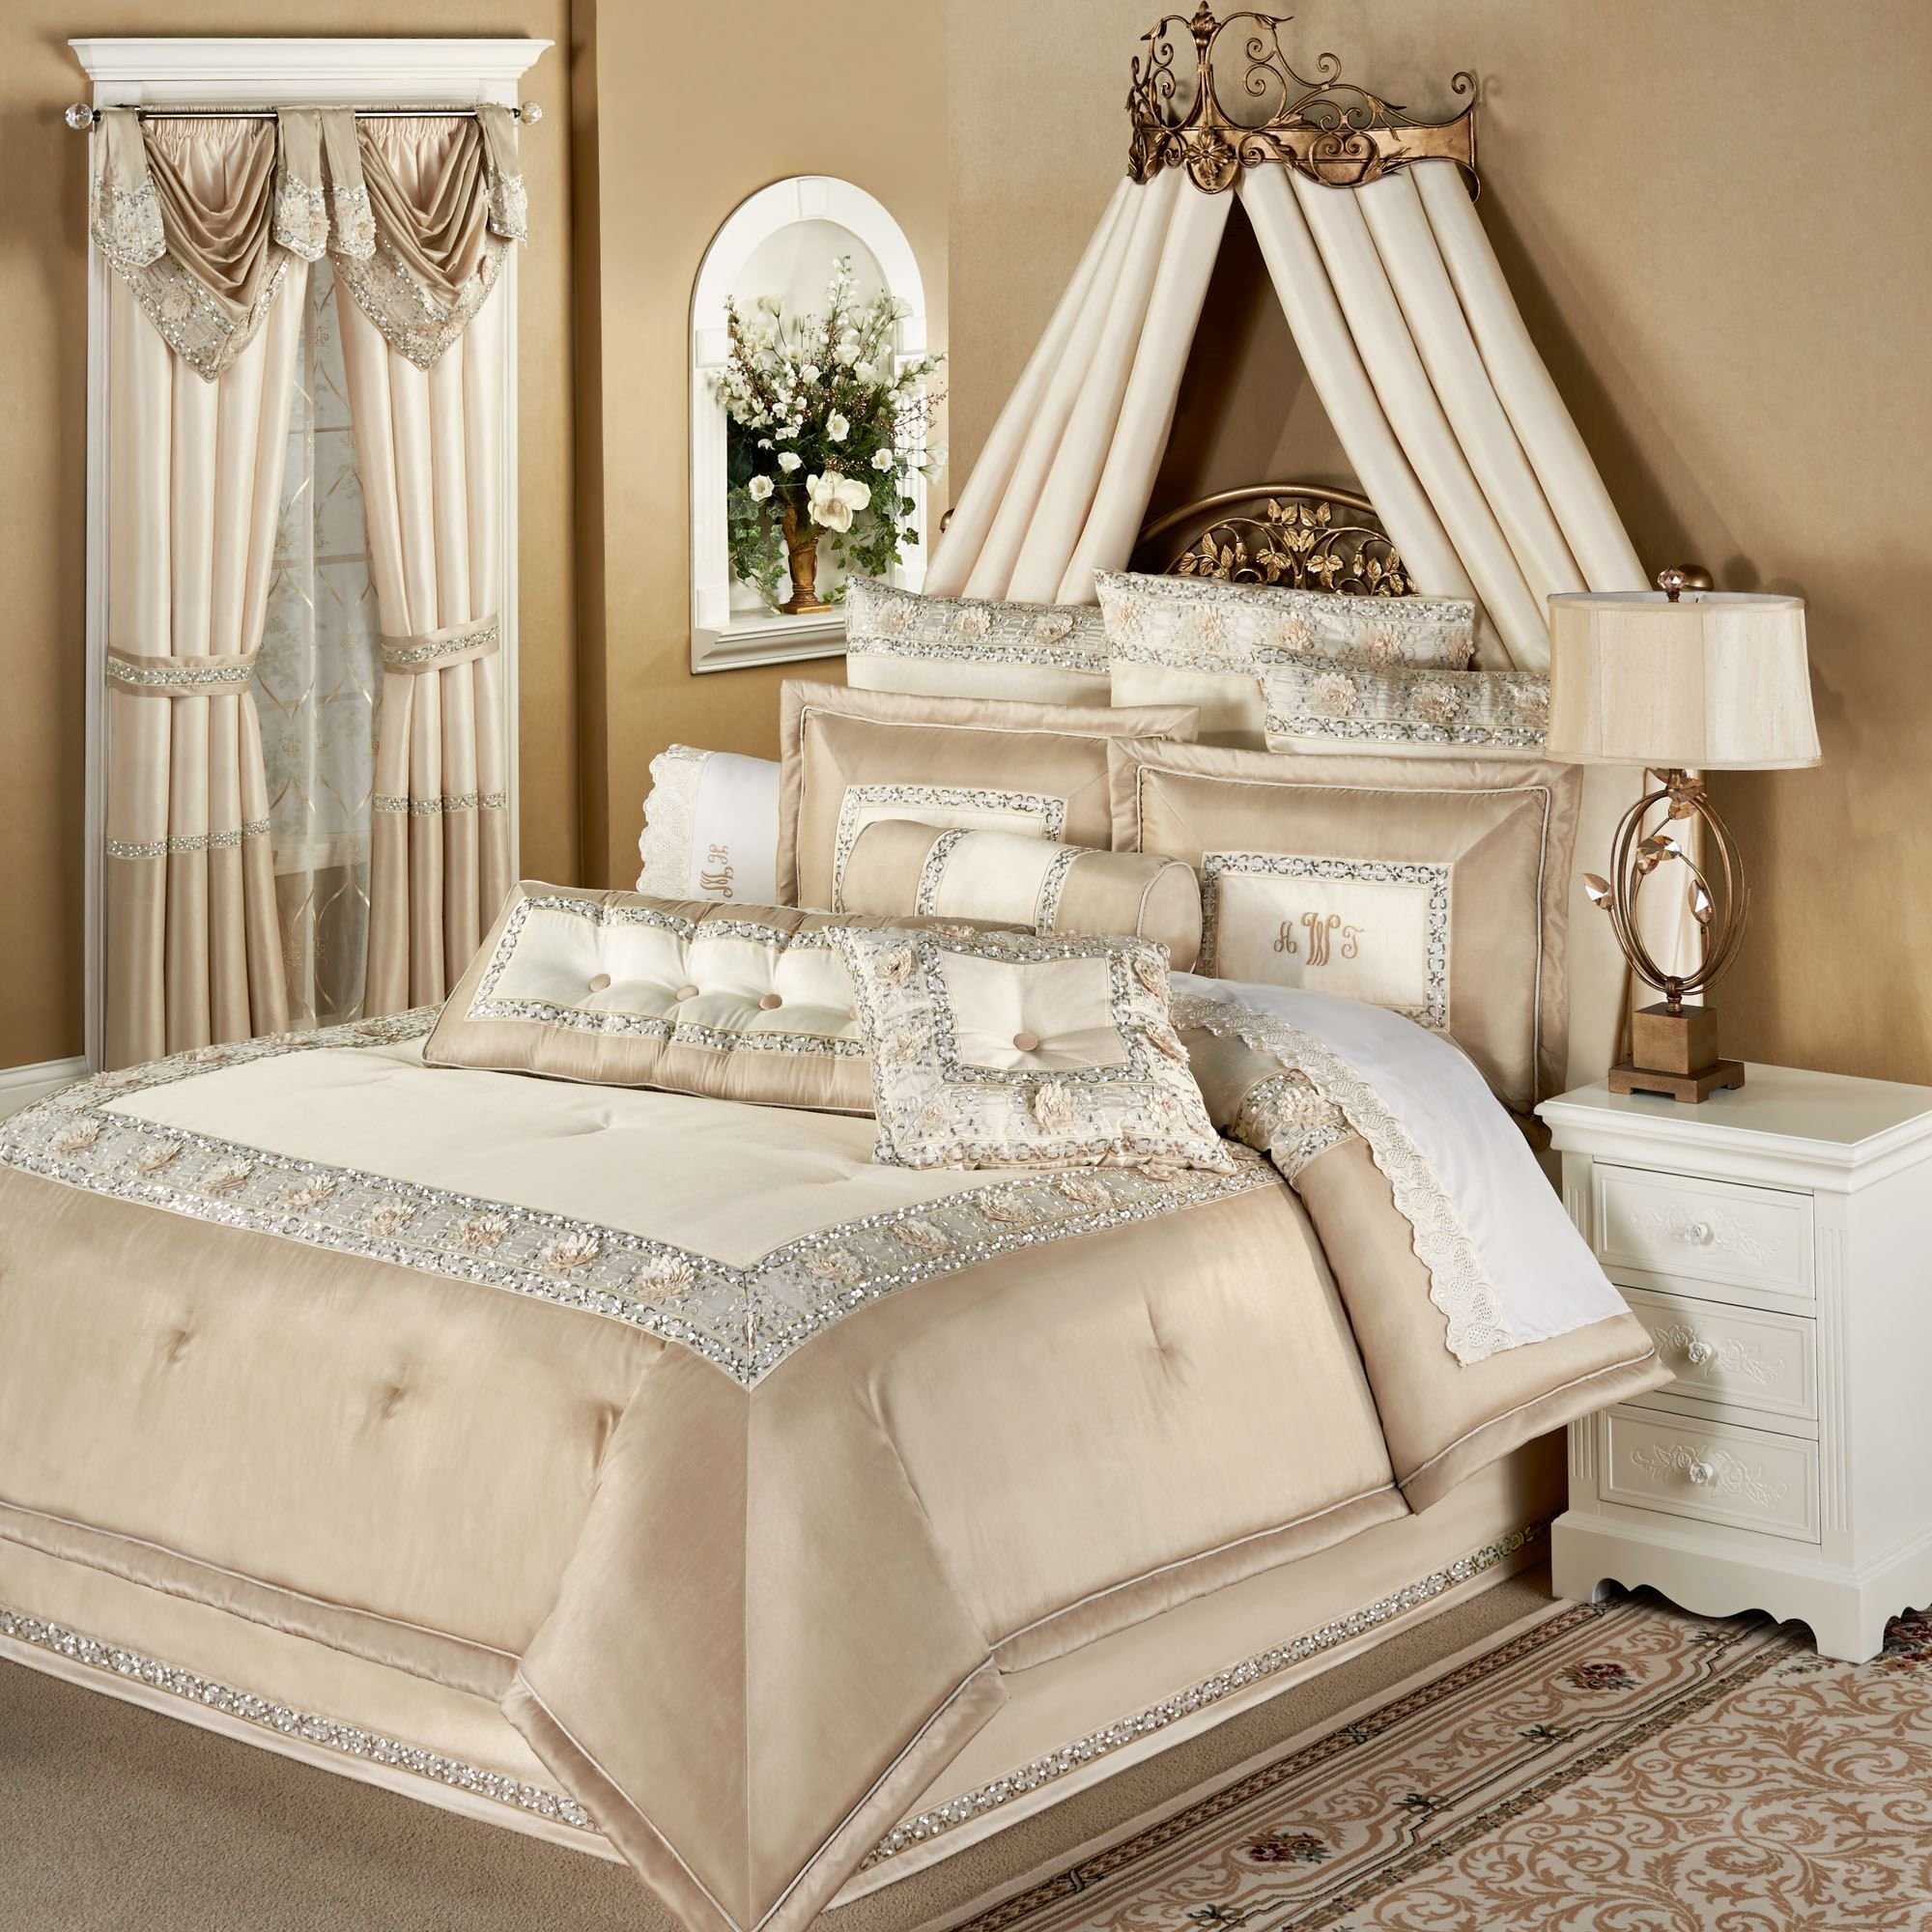 in microsuede queen light brown pc smashing sets material bed cv canada ideas pattern polyestr unique comforter pct luxury color adorable solid bedding